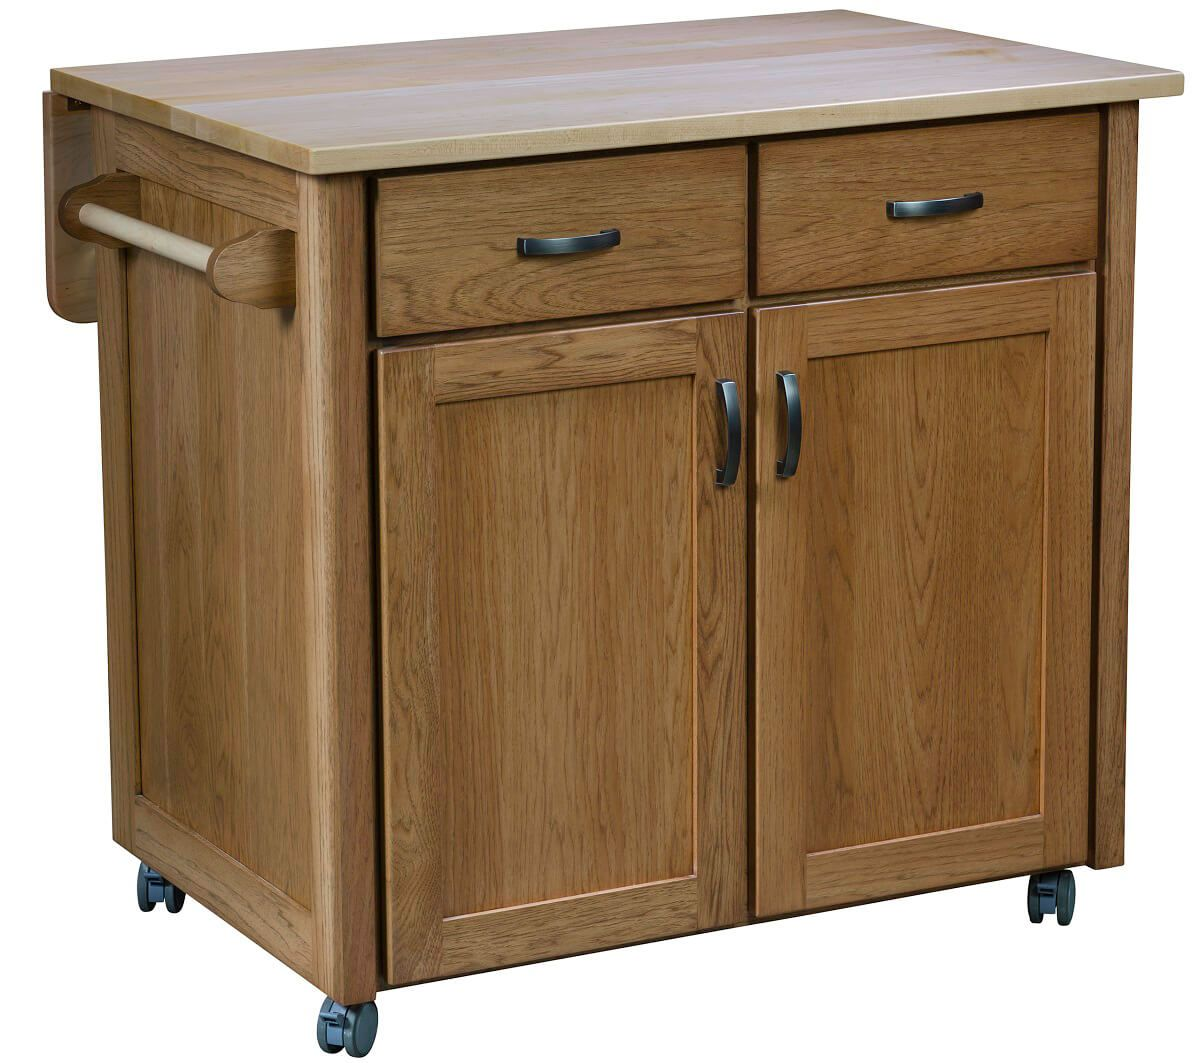 Caldwell Mobile Kitchen Island  Countryside Amish Furniture